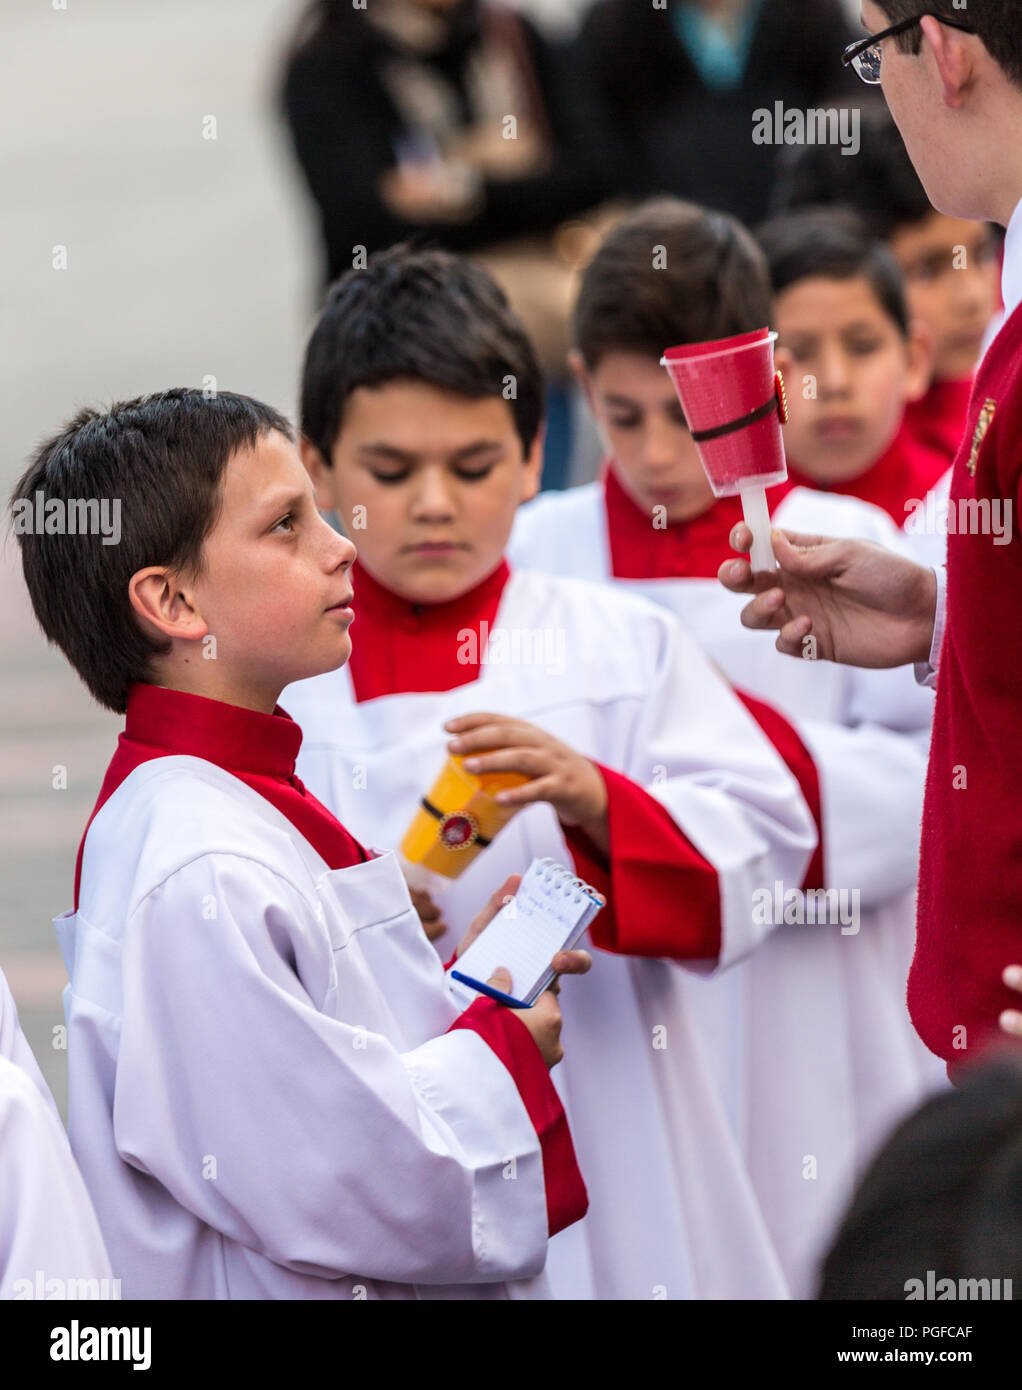 Cuenca, Ecuador / June 4, 2015 - Catholic Curate (priest trainee) talks to young boys prior to Corpus Cristi procession - Stock Image